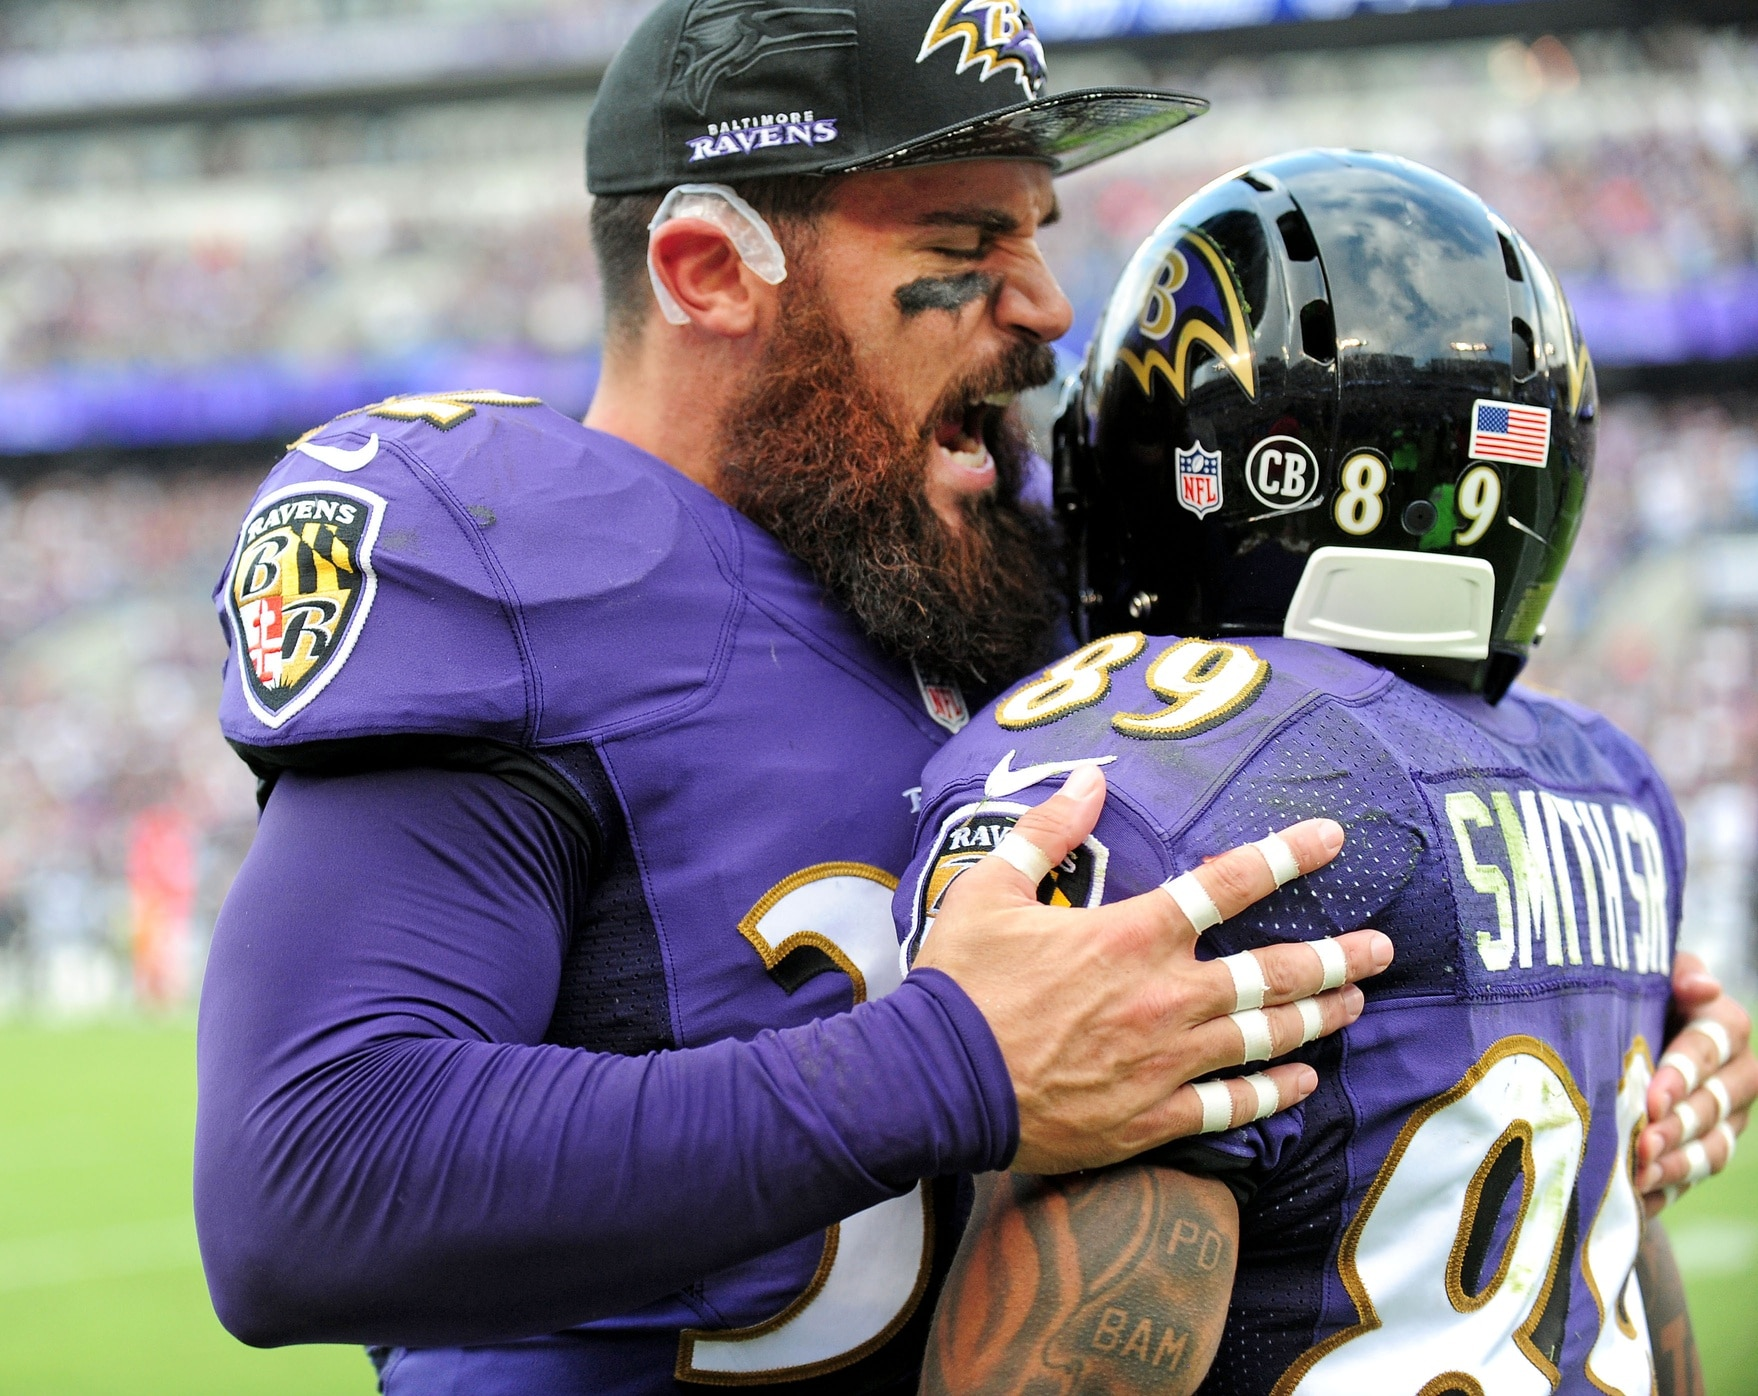 Rams sign Weddle to 2-year deal worth reported $10.5M